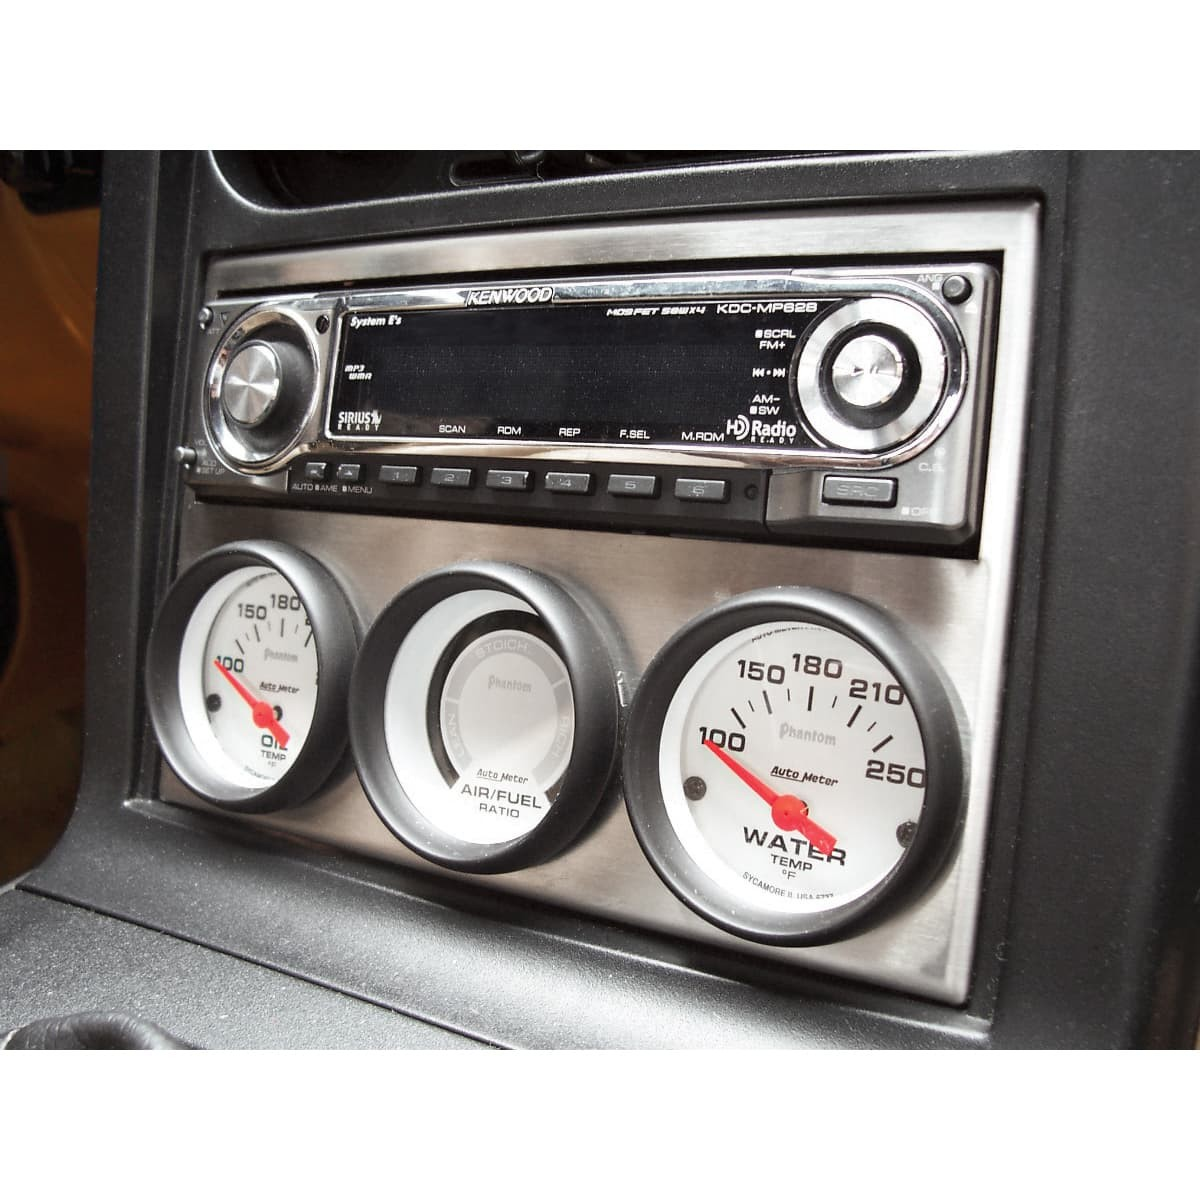 Ddm 1 Interieur Gauge And Radio Surrounds By Ddm Interior 1990 1997 Mx 5